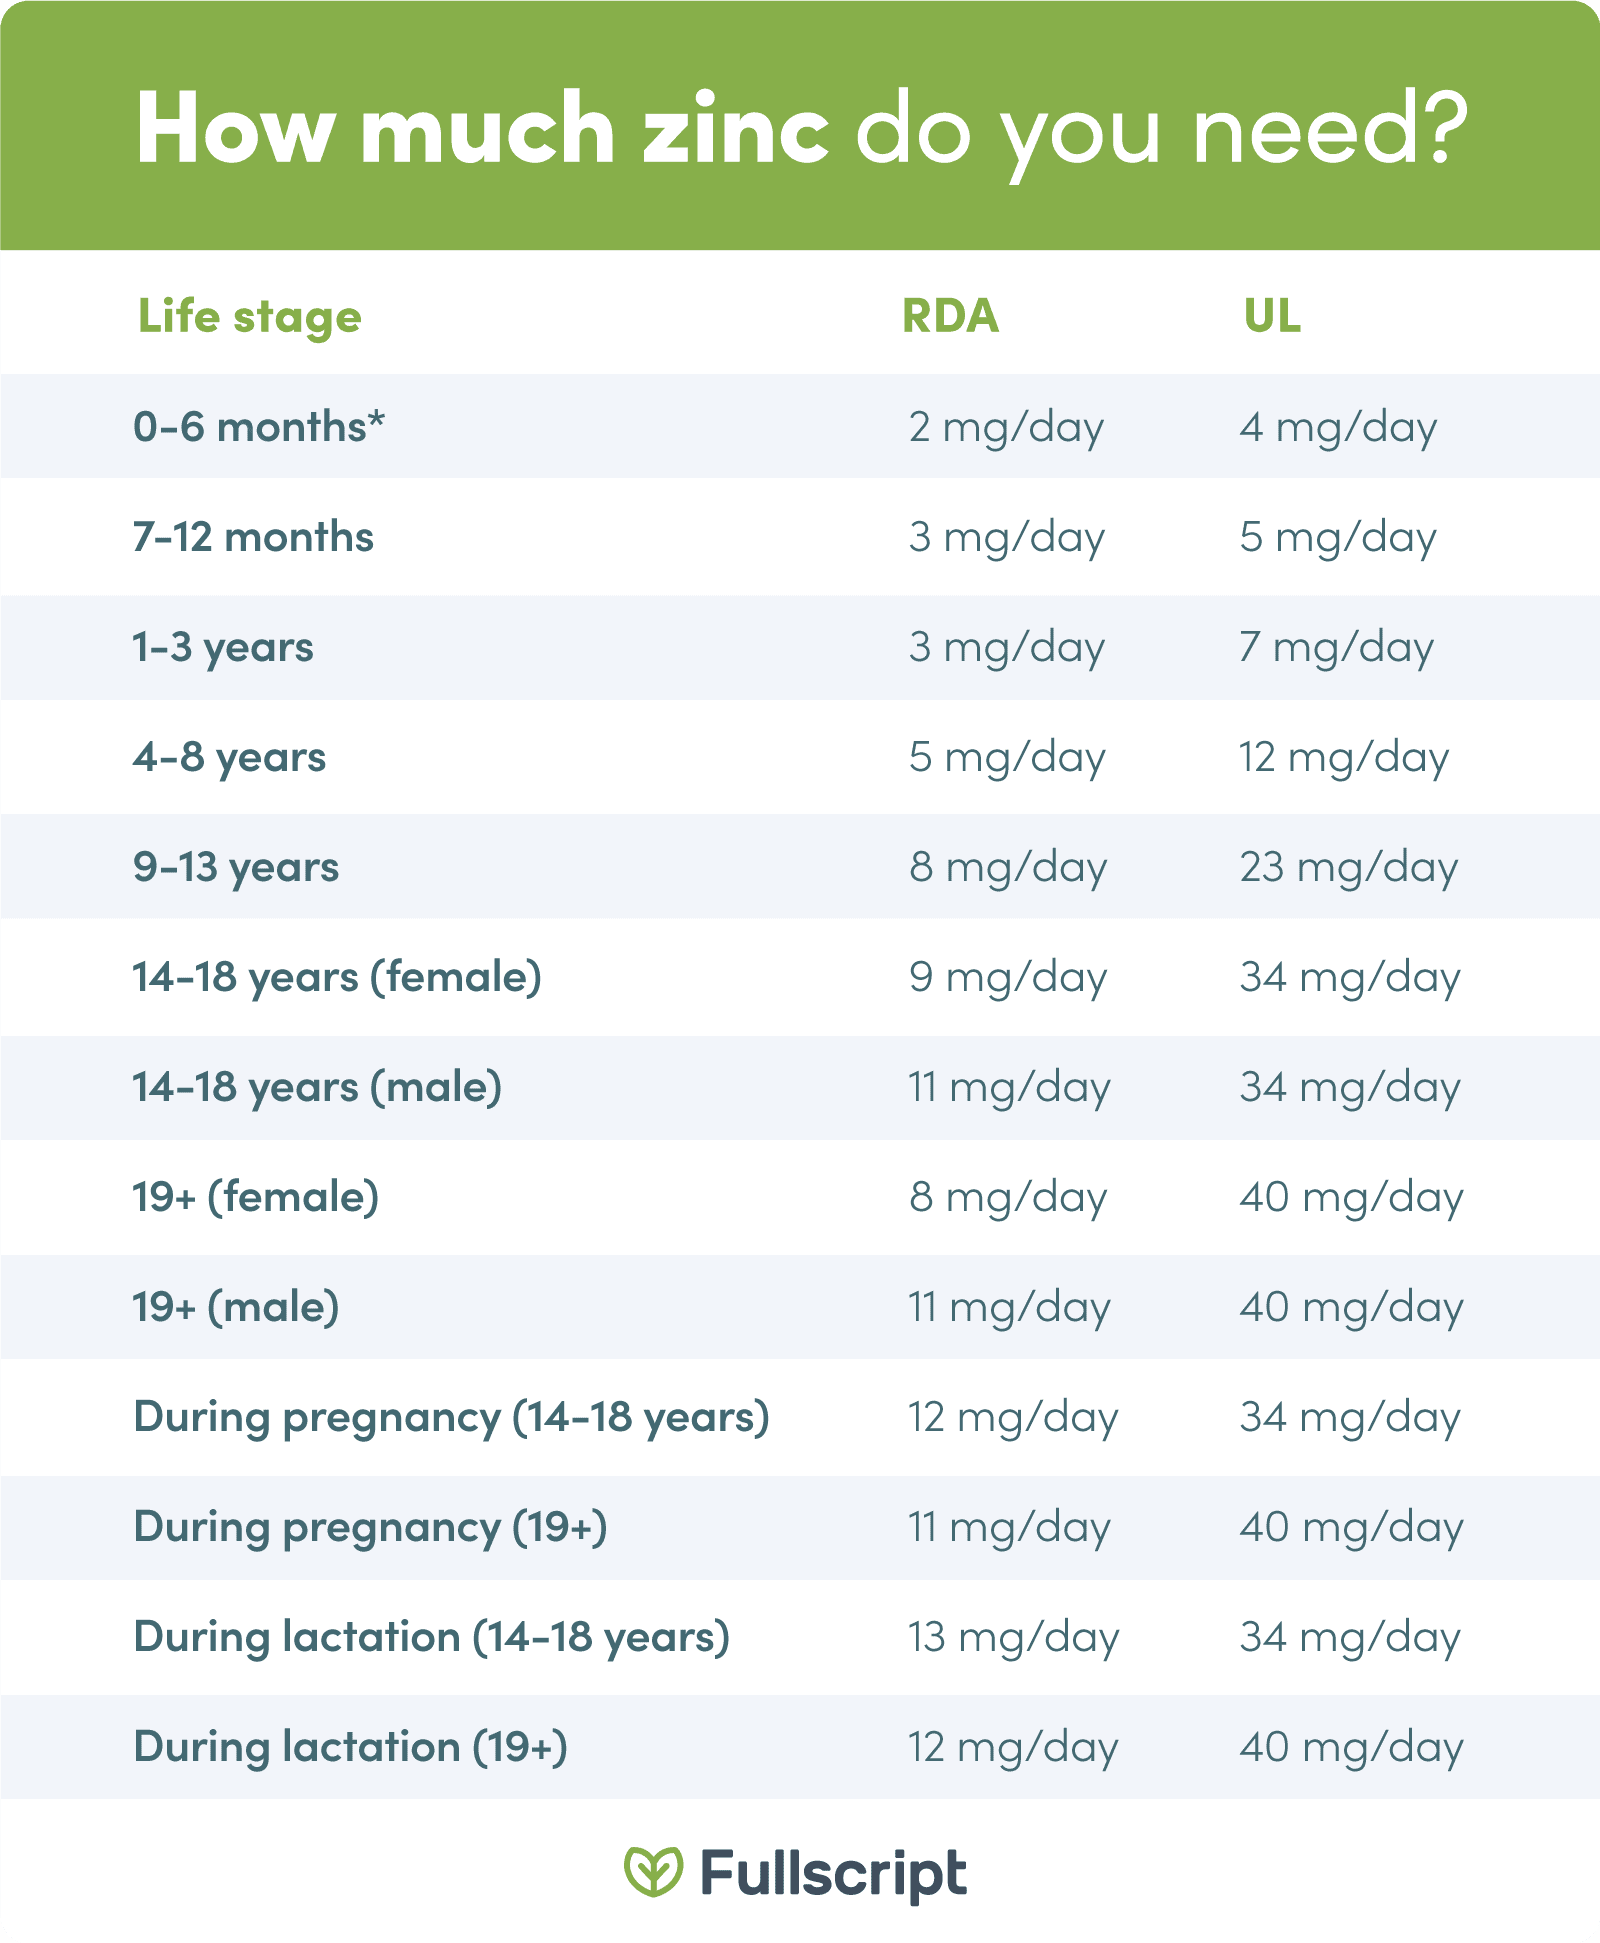 chart for how much zinc a person at different life stages, ages, they need